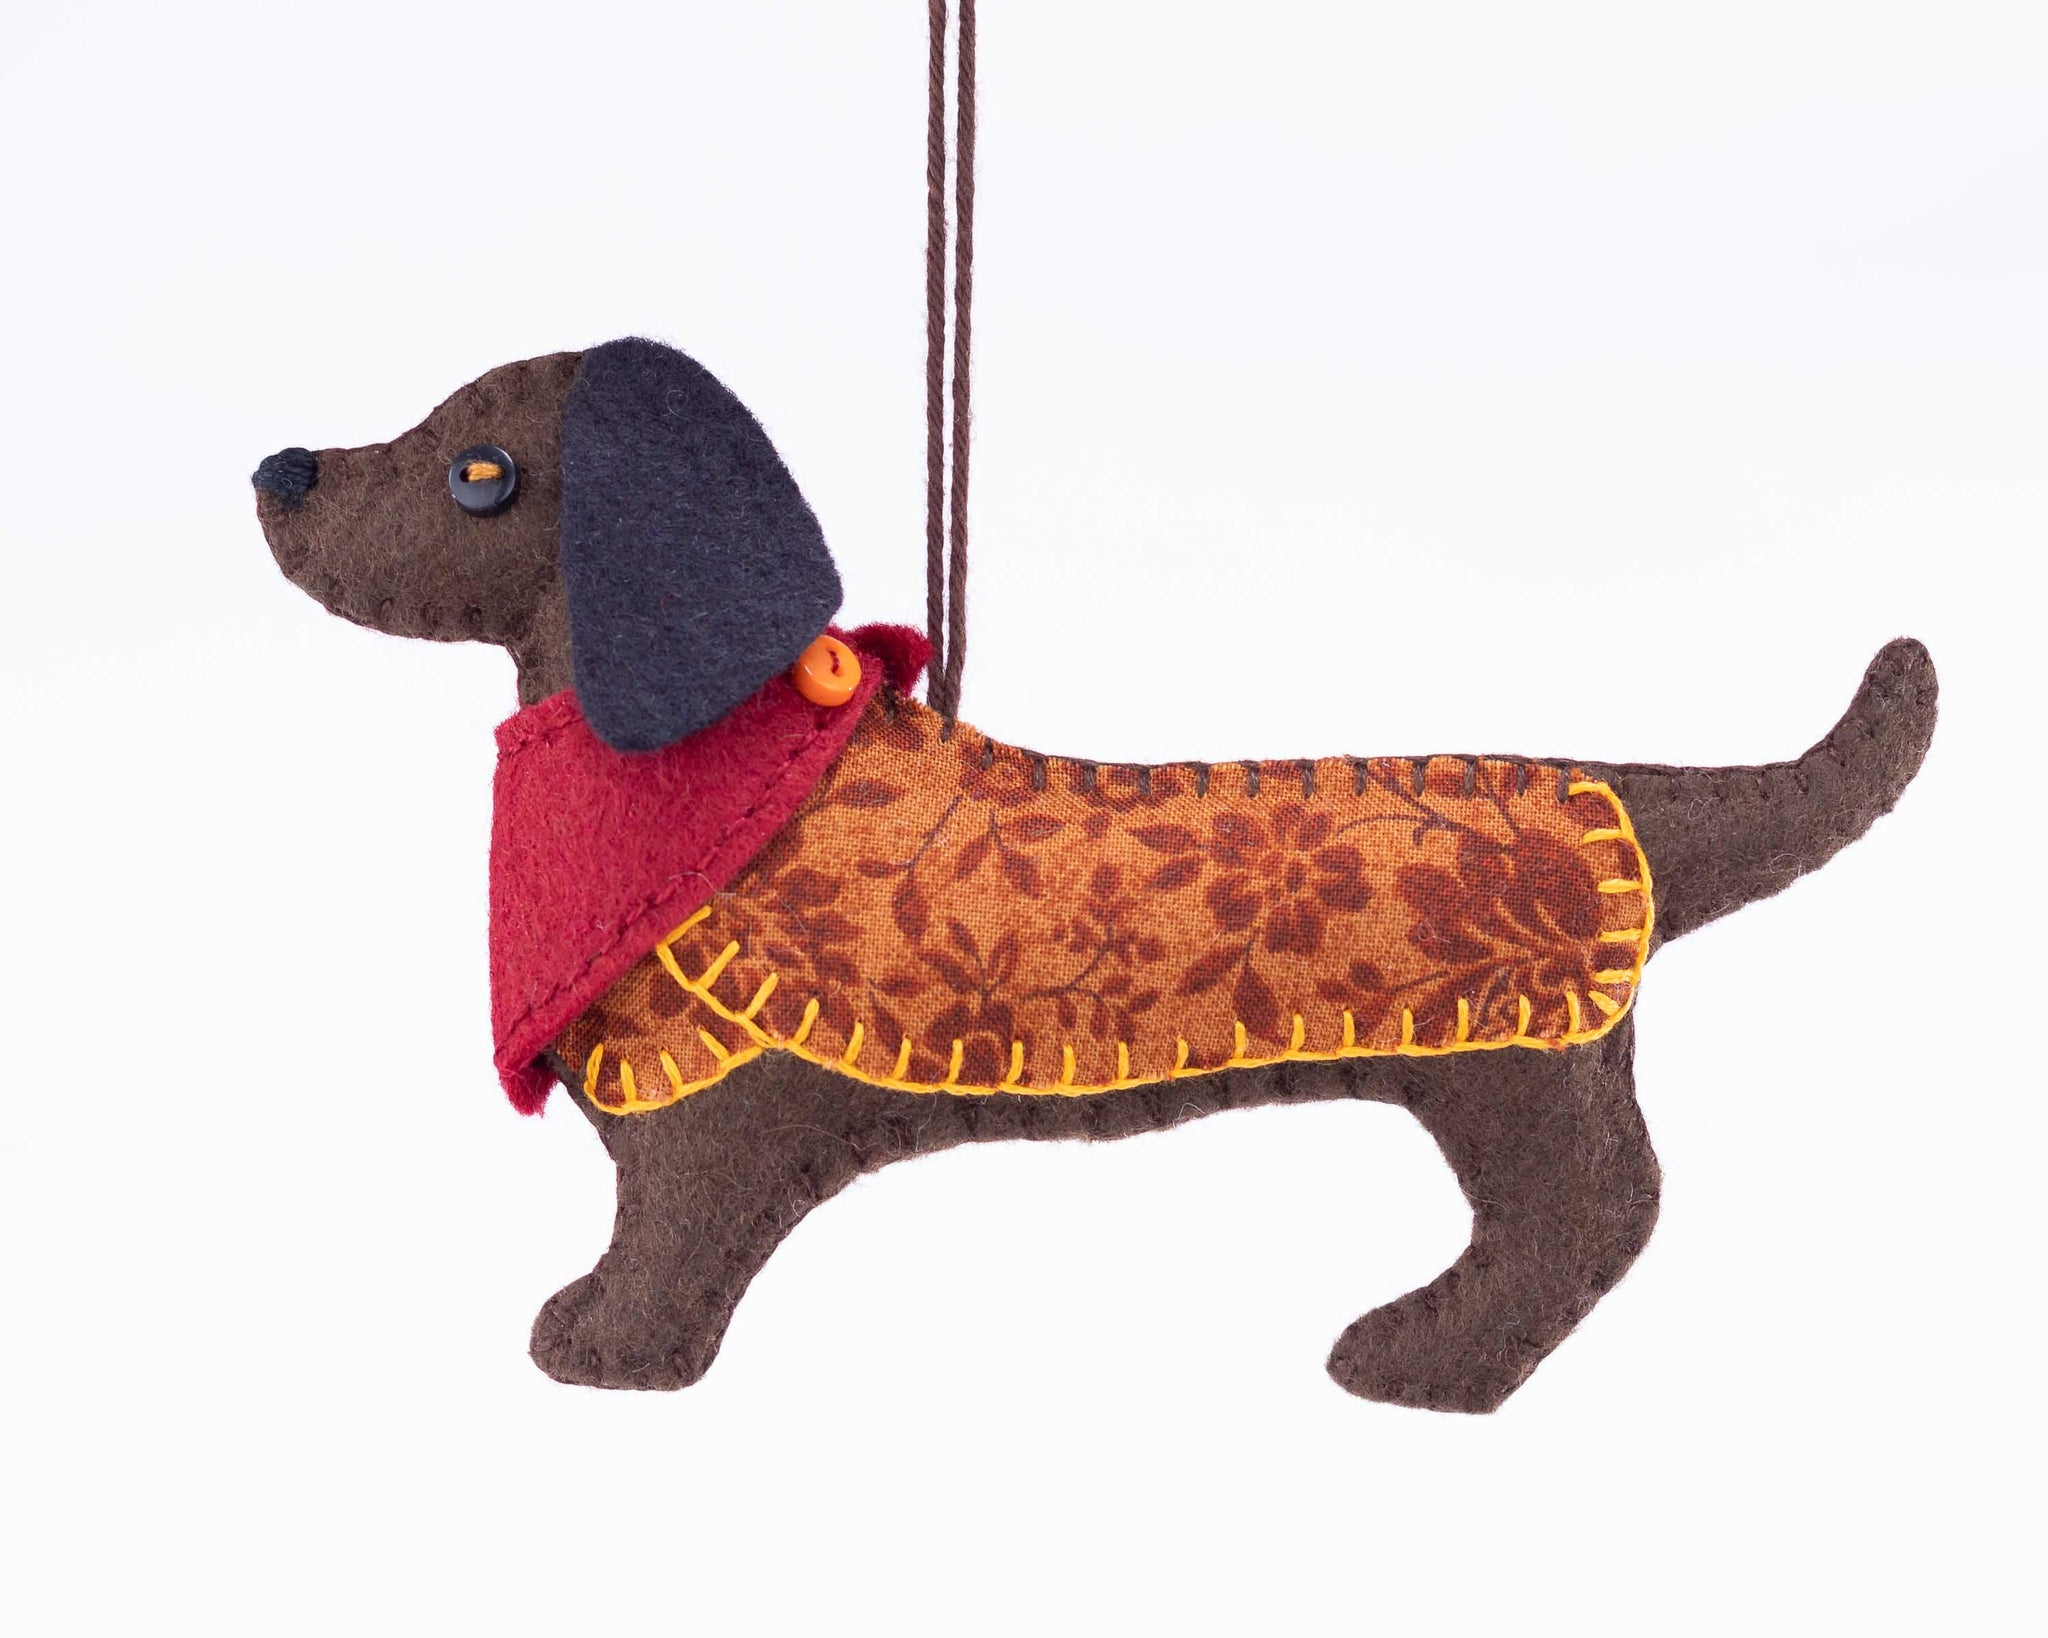 Bruno the felt Dachshund ornament